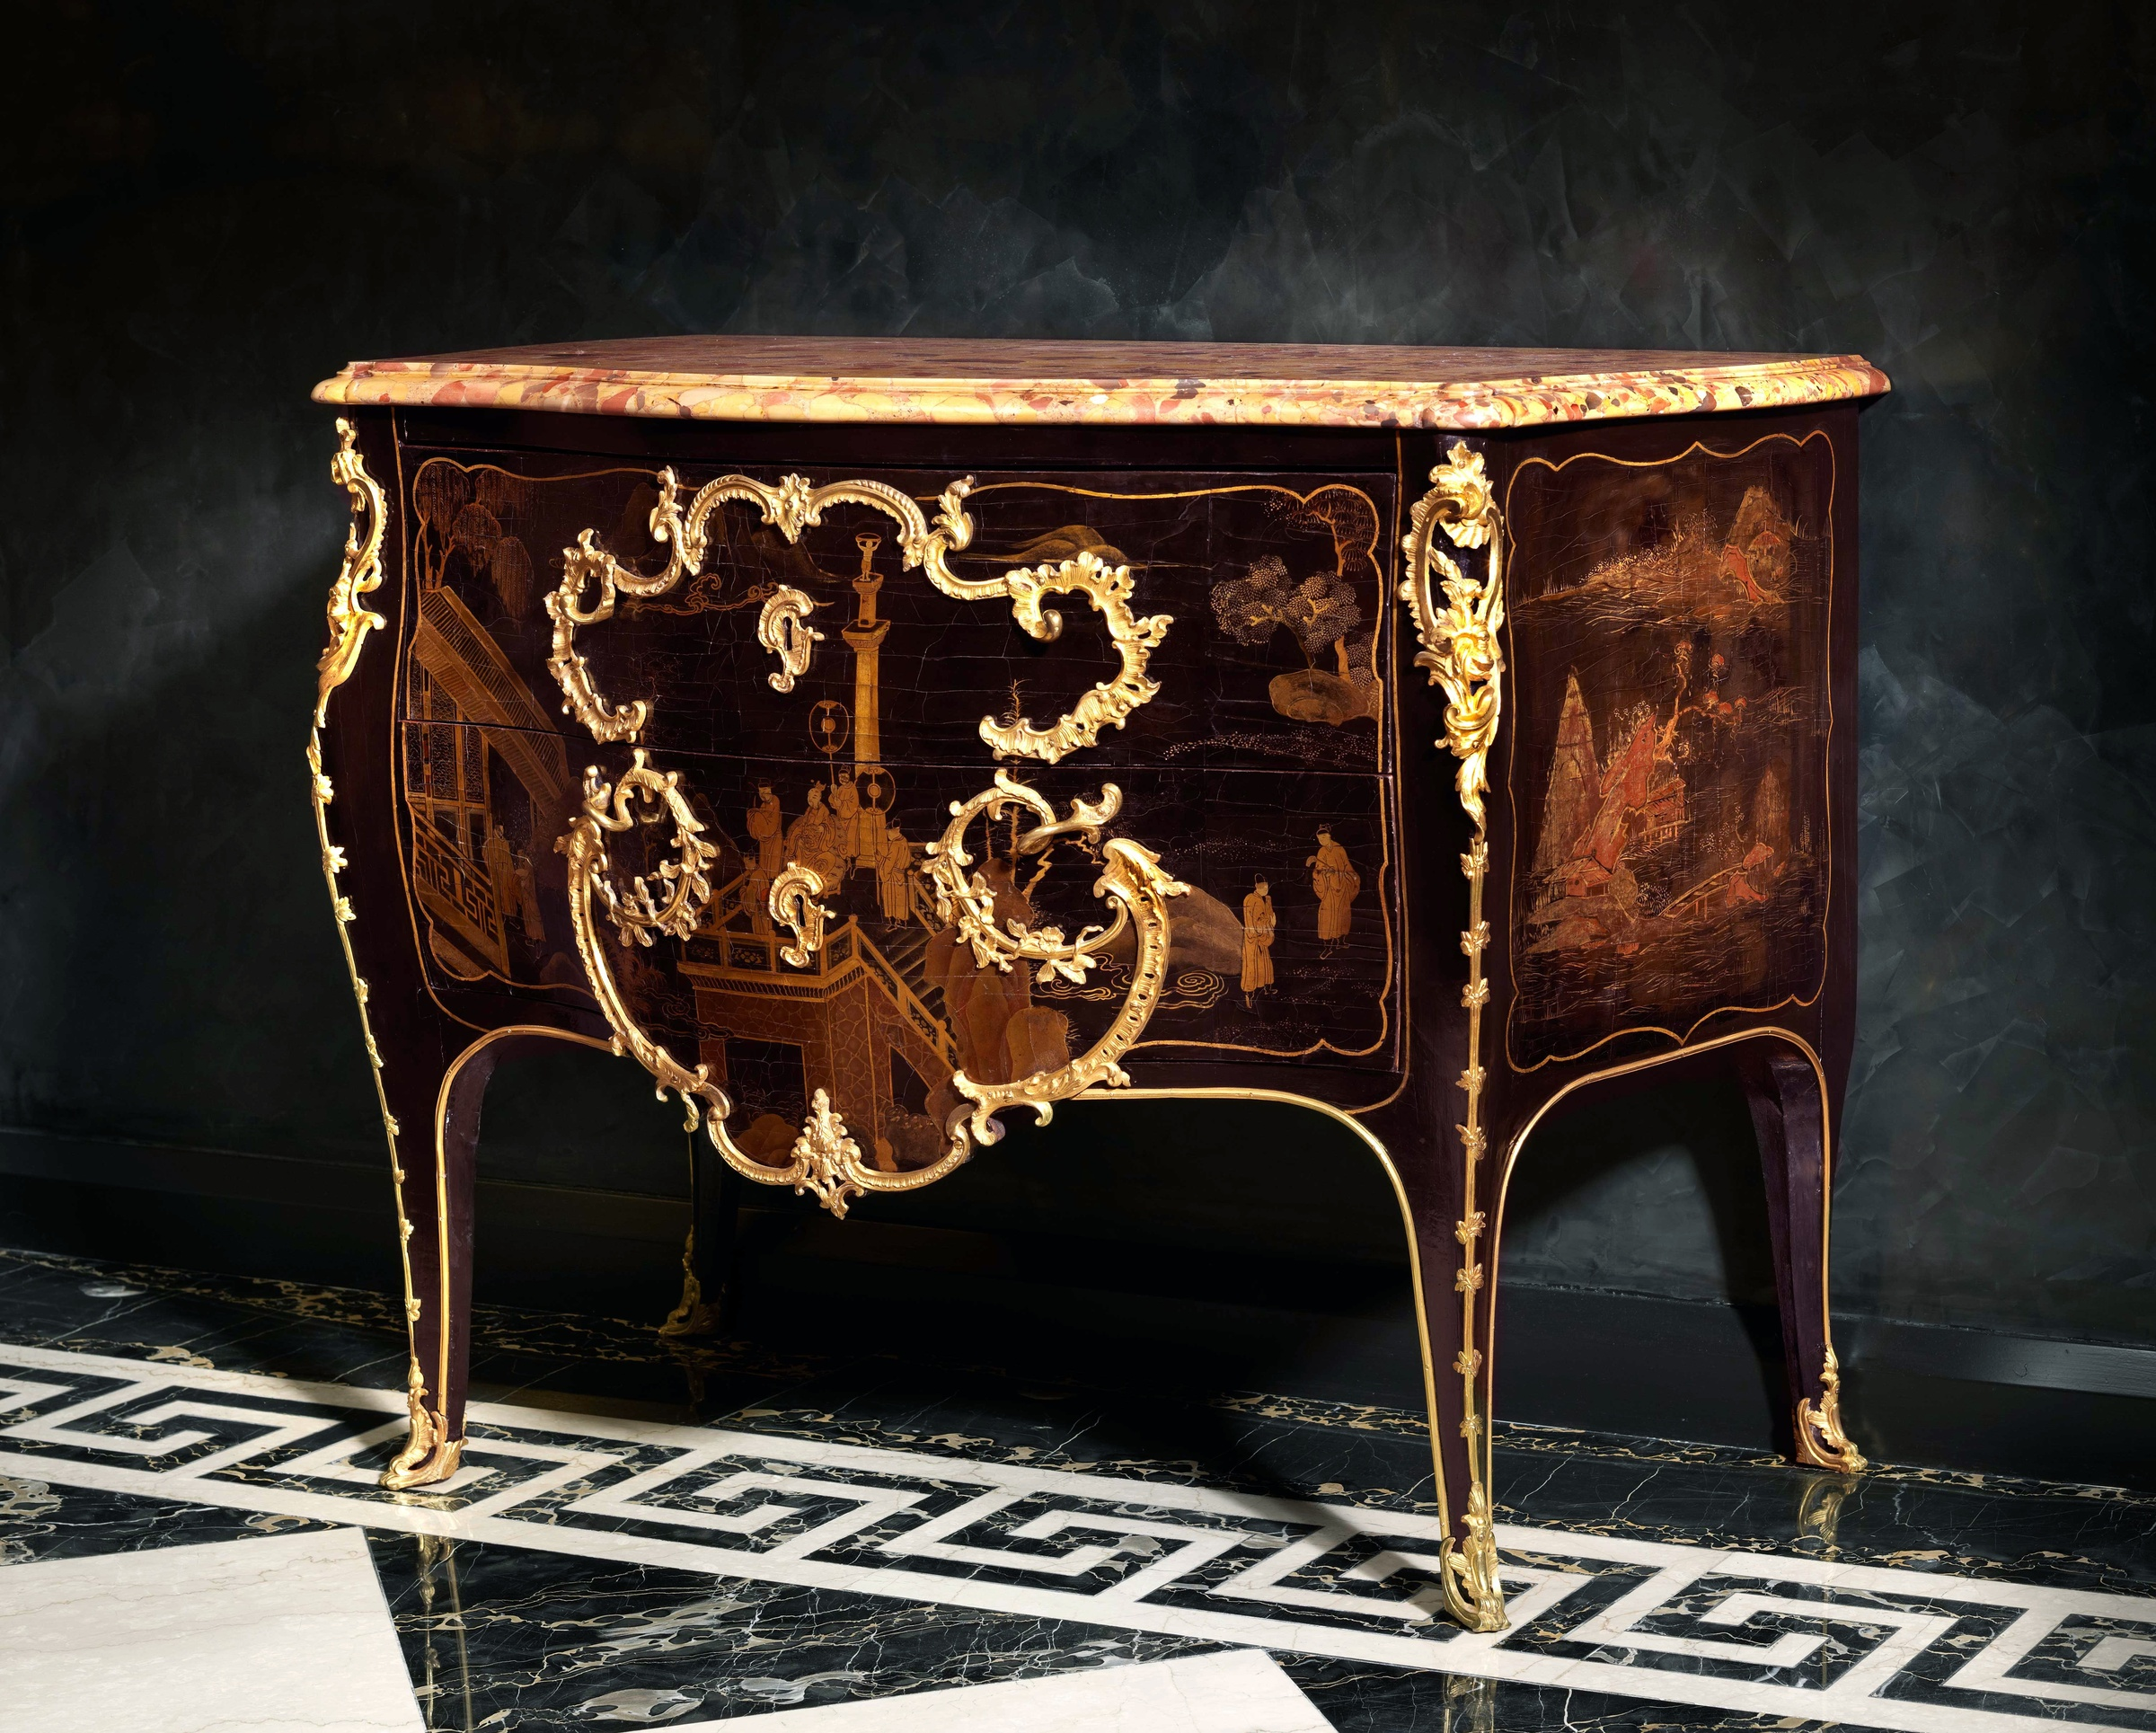 Jacques dubois a louis xv commode by jacques dubois paris date